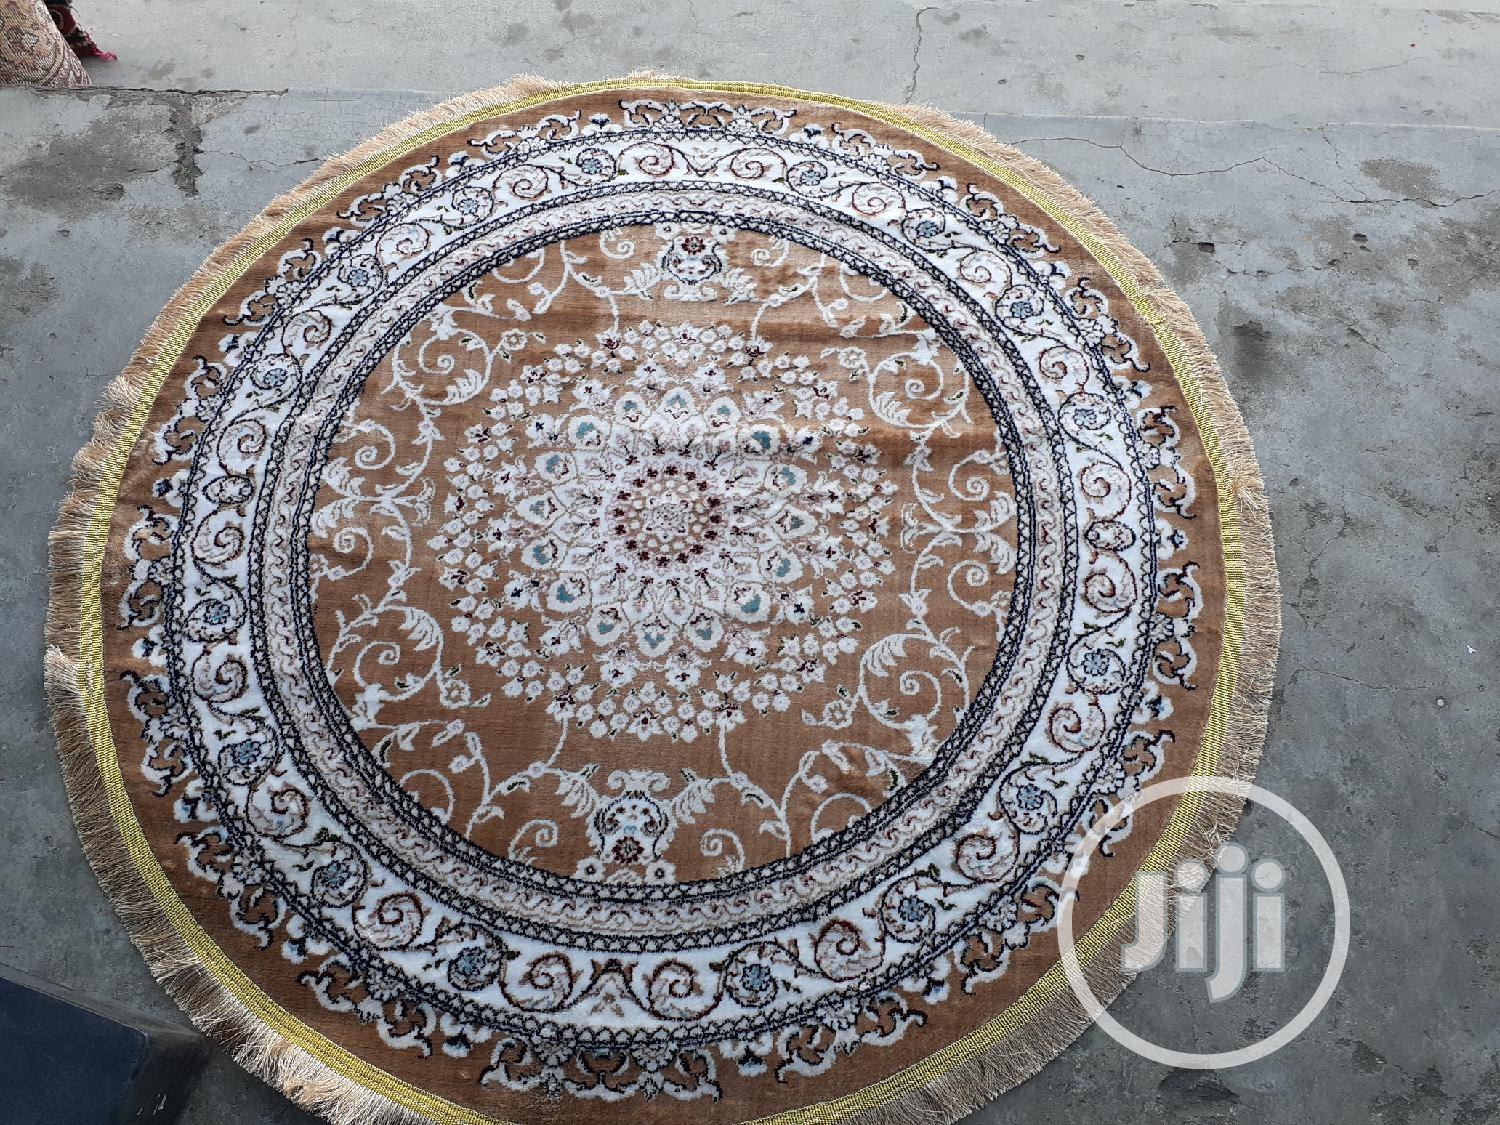 200×200cm Round Persian Arabian Center Rug | Home Accessories for sale in Yaba, Lagos State, Nigeria